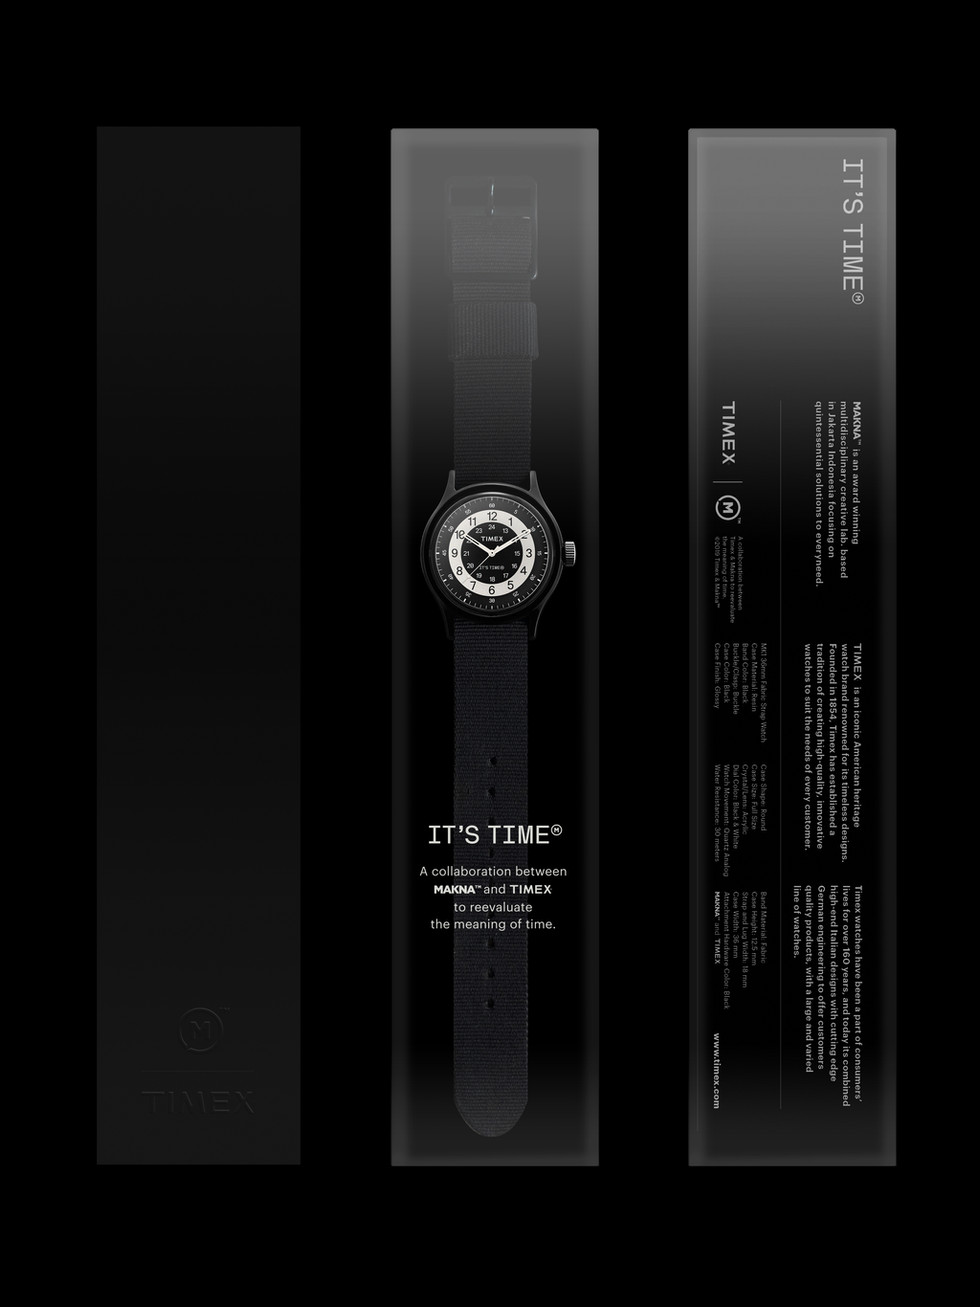 ITS TIME PACKAGING 3 FRONT.jpg